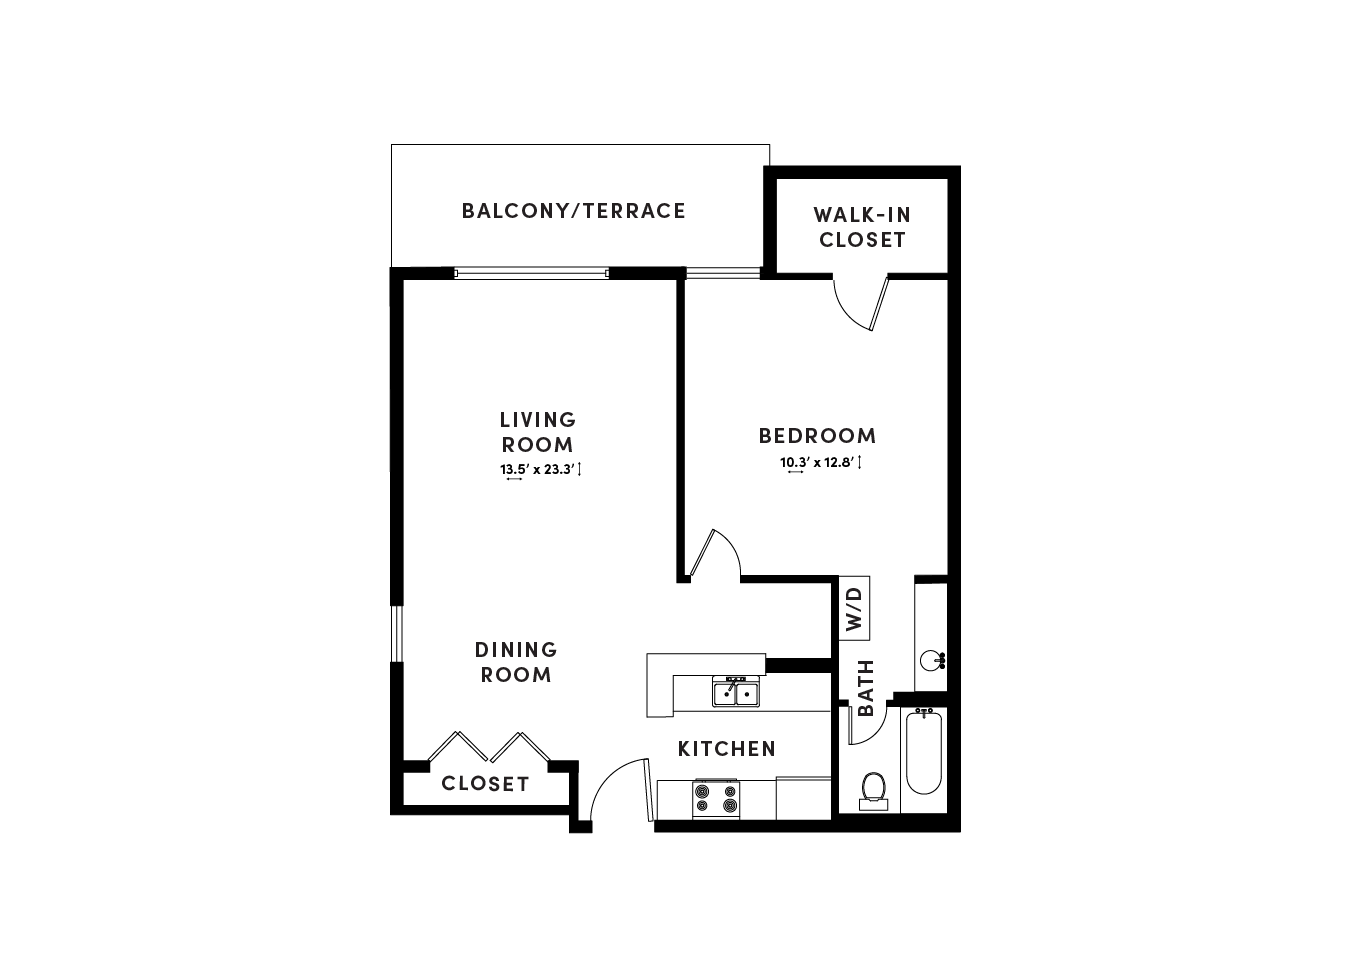 floor plan image of apartment_D323